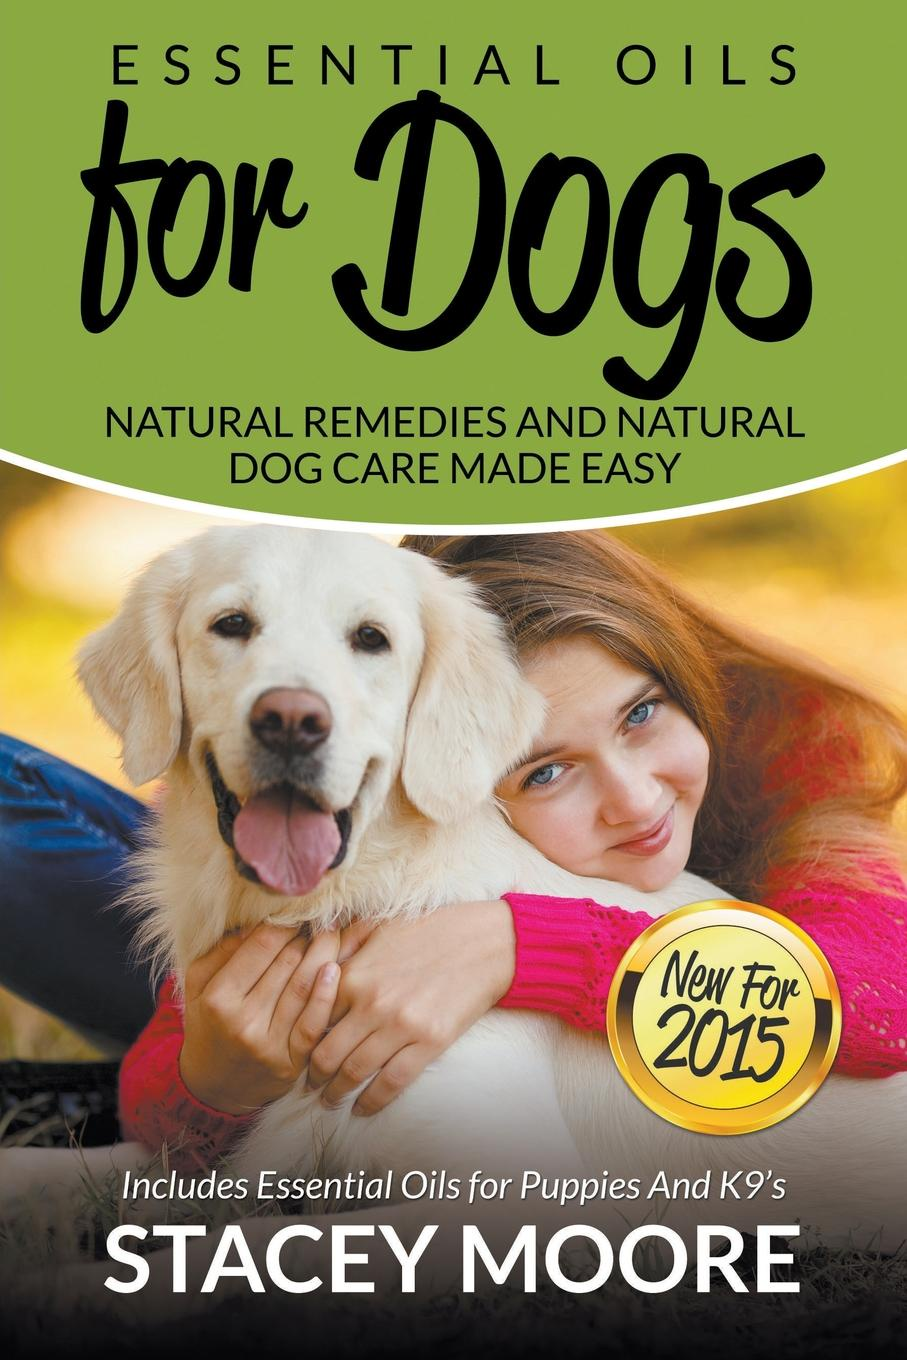 Stacey Moore Essential Oils for Dogs. Natural Remedies and Natural Dog Care Made Easy: New for 2015 Includes Essential Oils for Puppies and K9.s цена